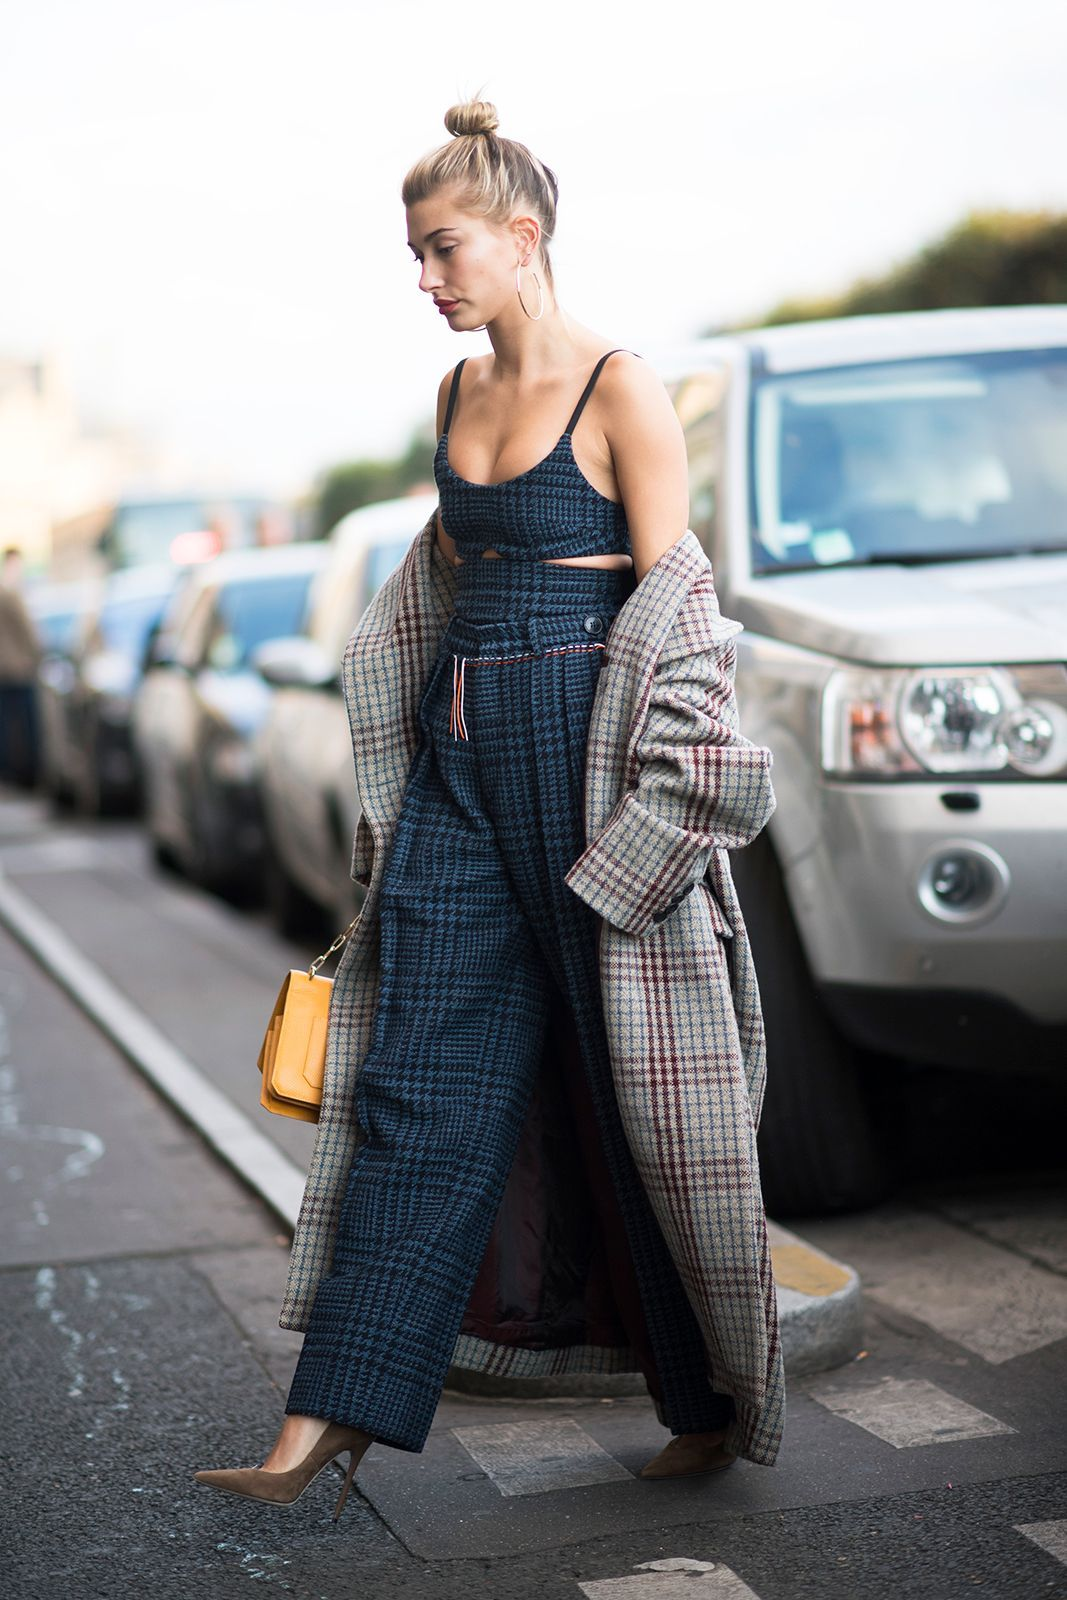 The Best Street Style At Paris Fashion Week SS17 #refinery29  http://www.refinery29.uk/2016/10/124657/street-style-paris-fashion-week-ss17#slide-28  From Haider Ackermann to Isabel Marant, we're all about Hailey Baldwin's coat choices for PFW....